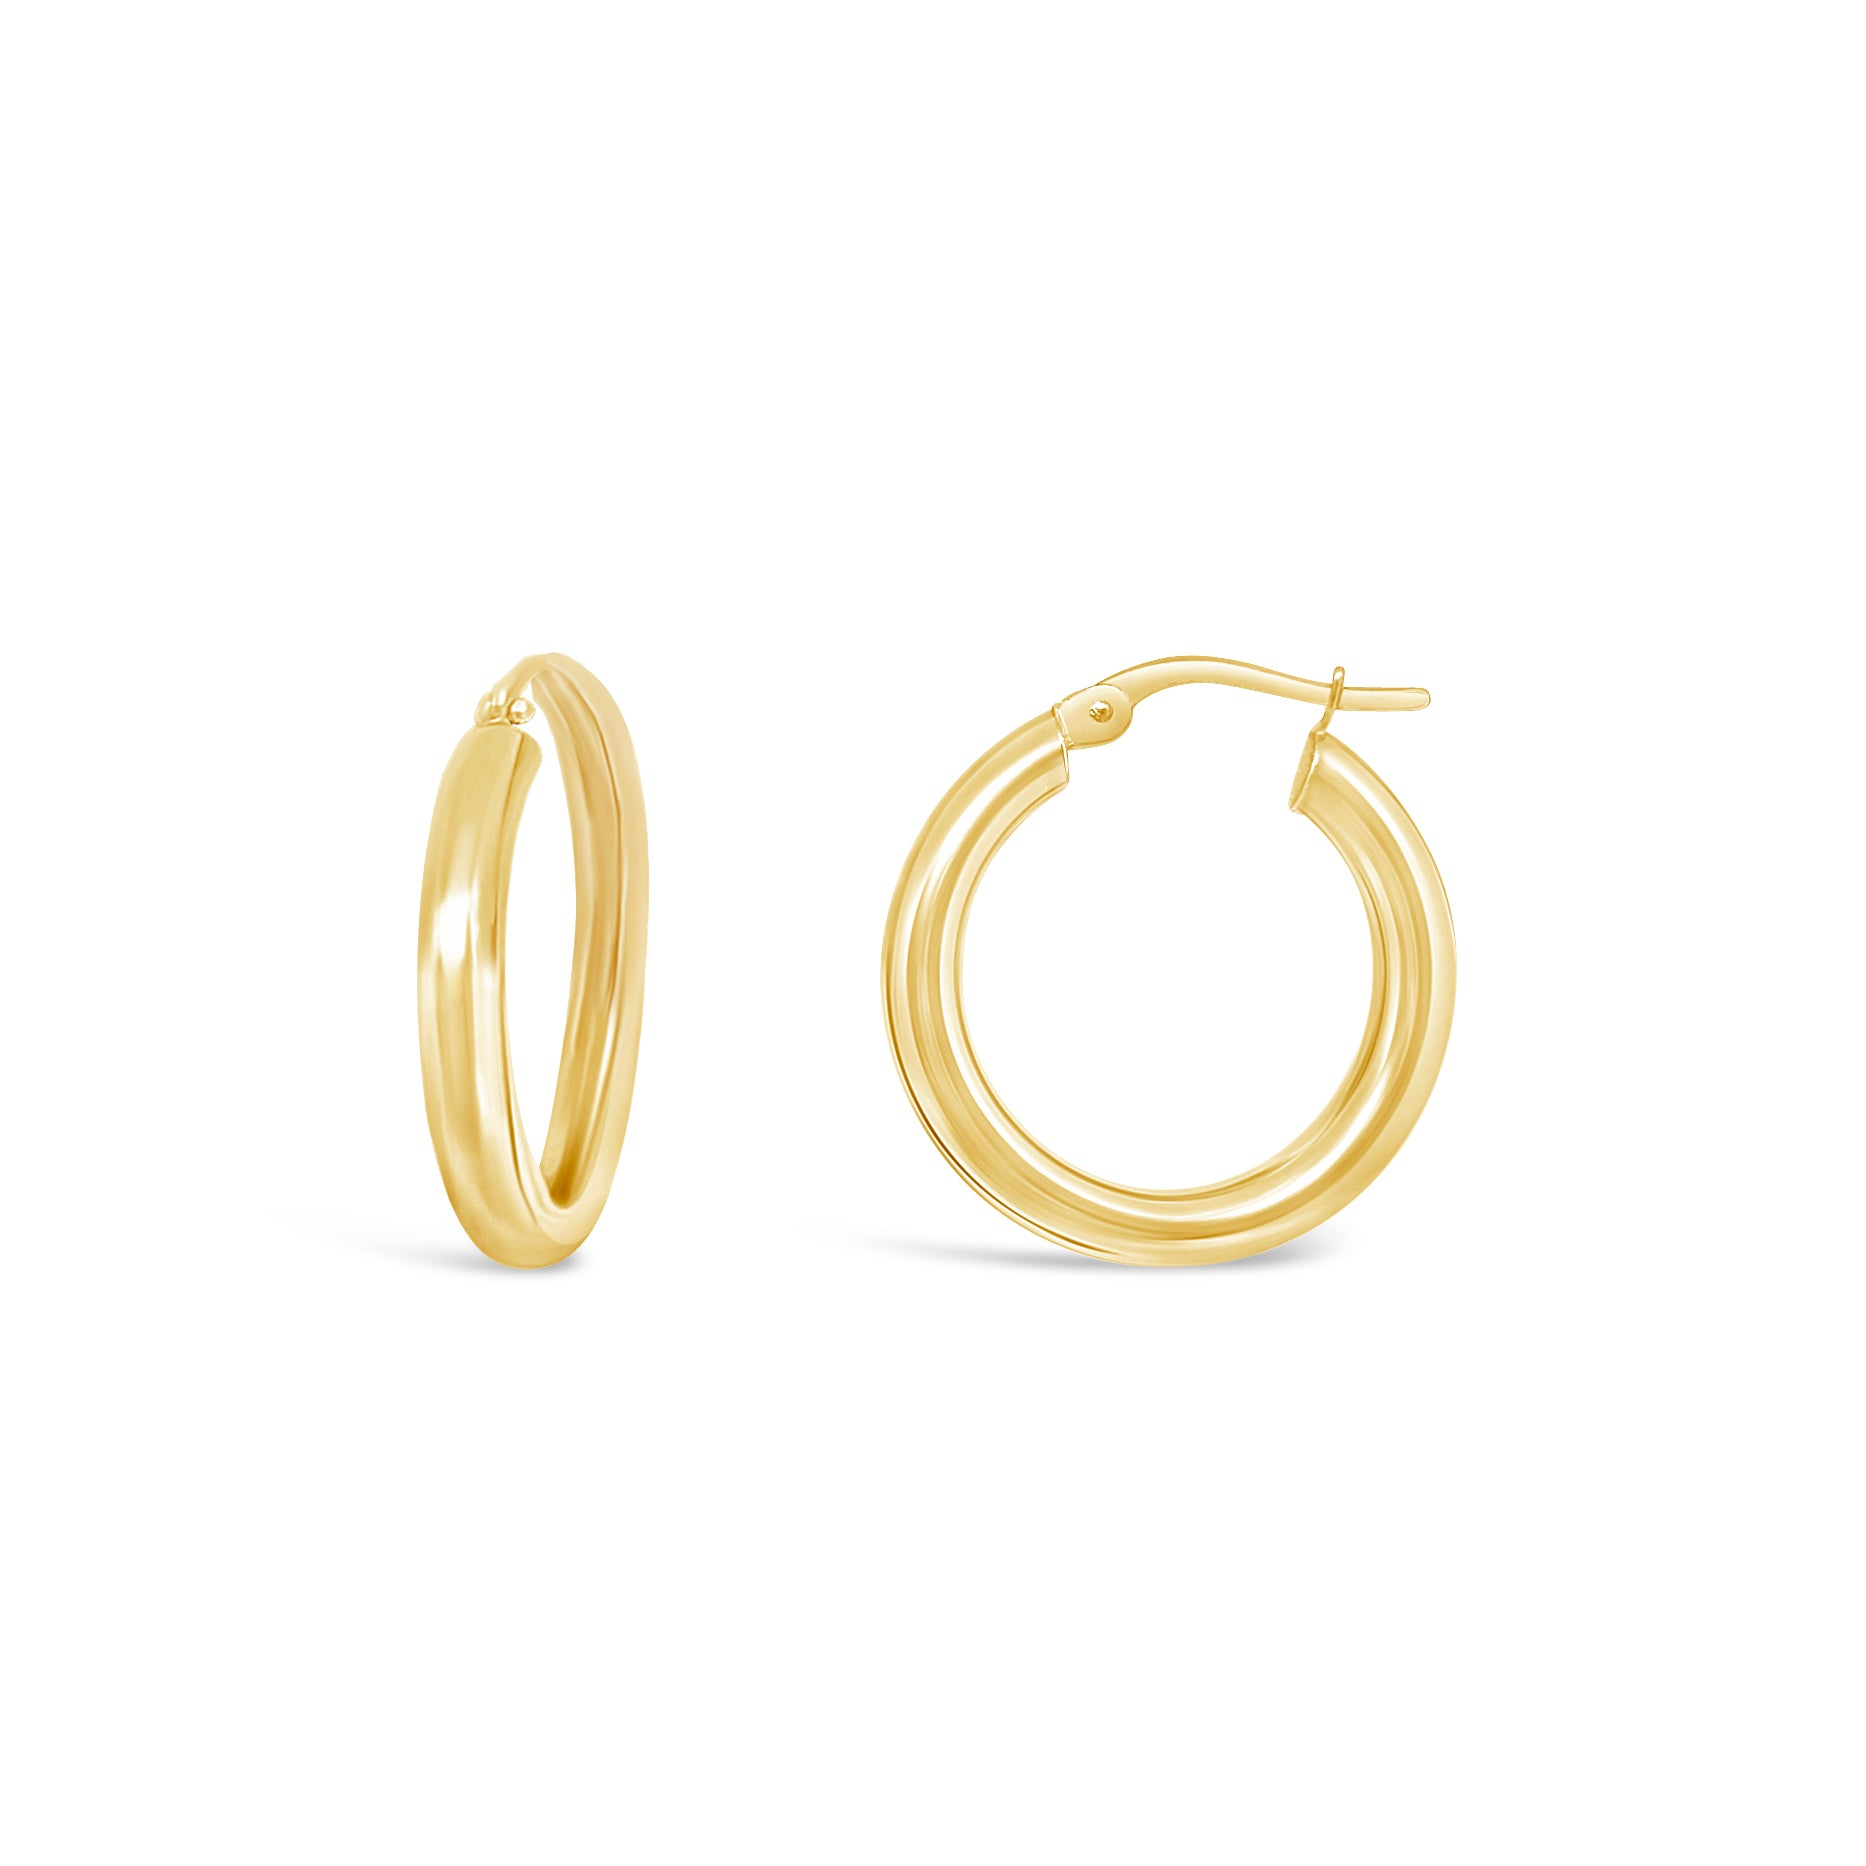 3mm Gold Hoops